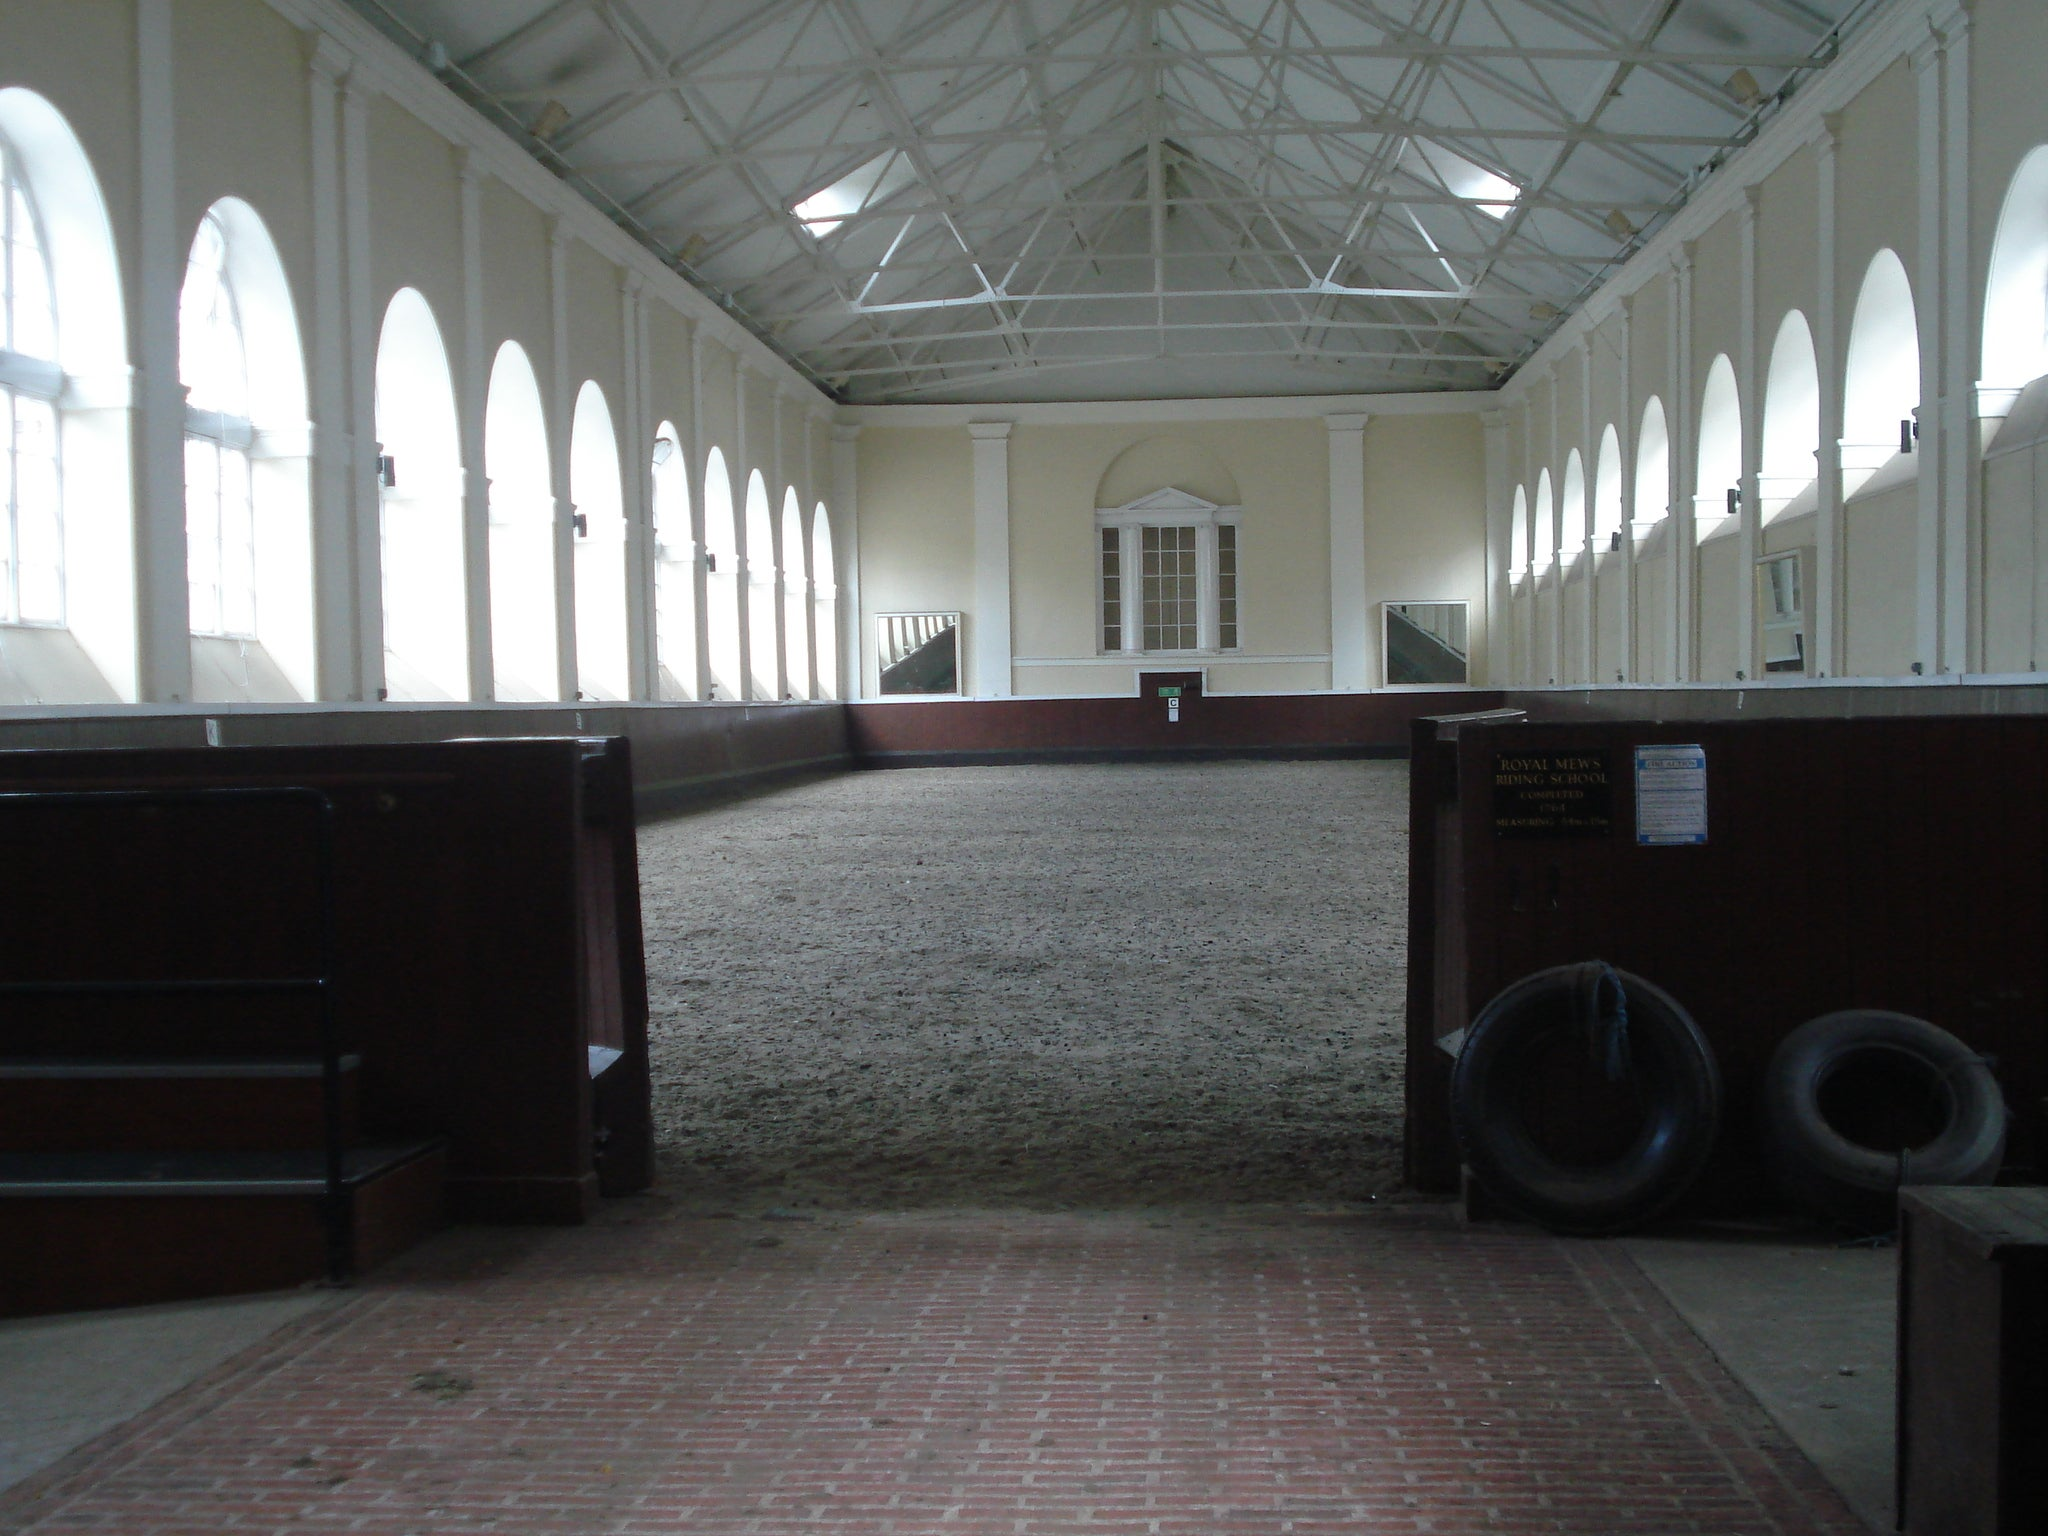 Arquitectura en Royal Mews